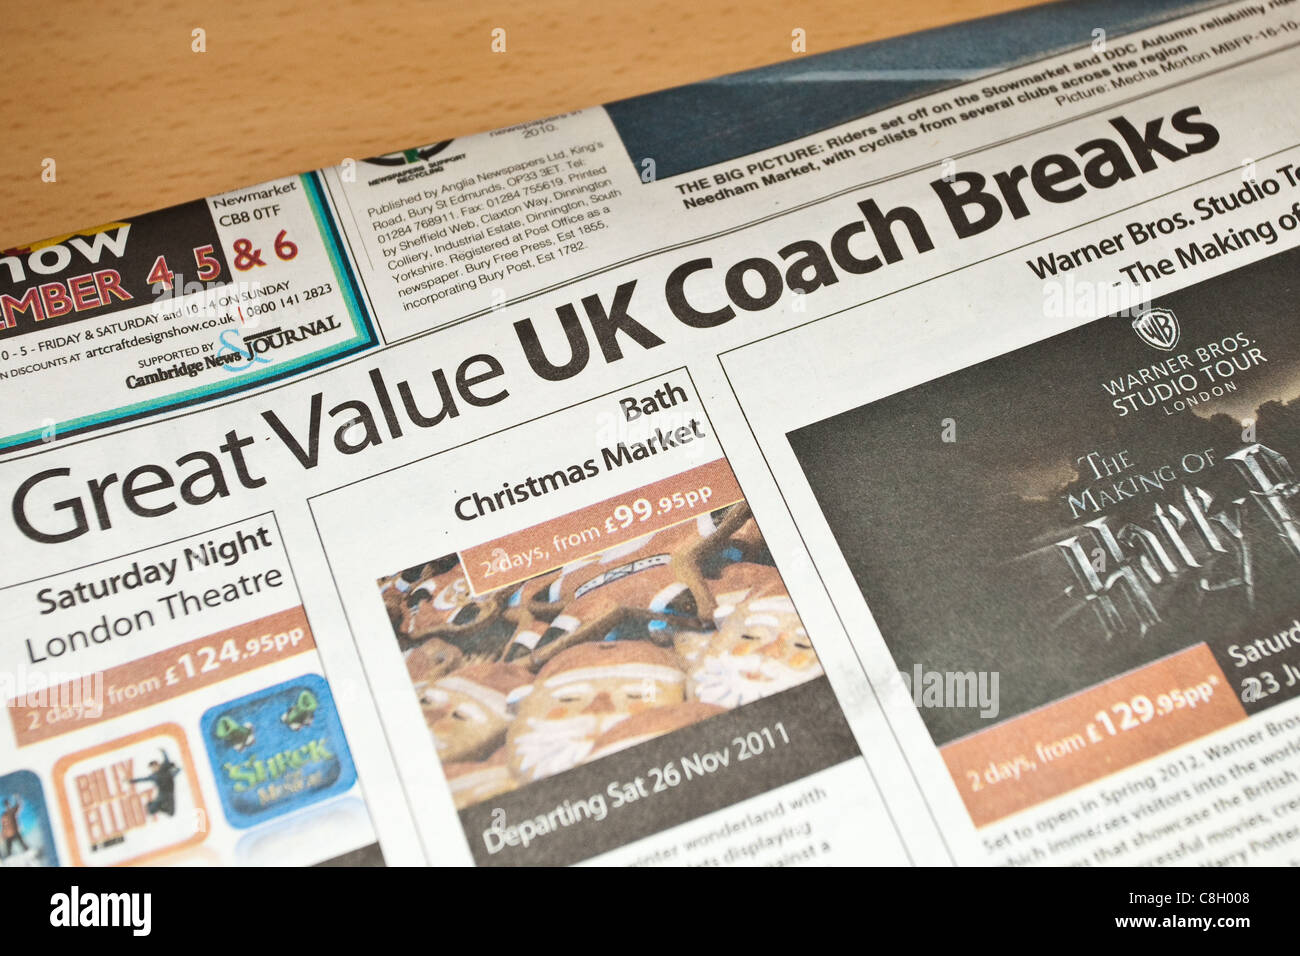 UK coach breaks advertised in a local newspaper; October 2011 - Stock Image